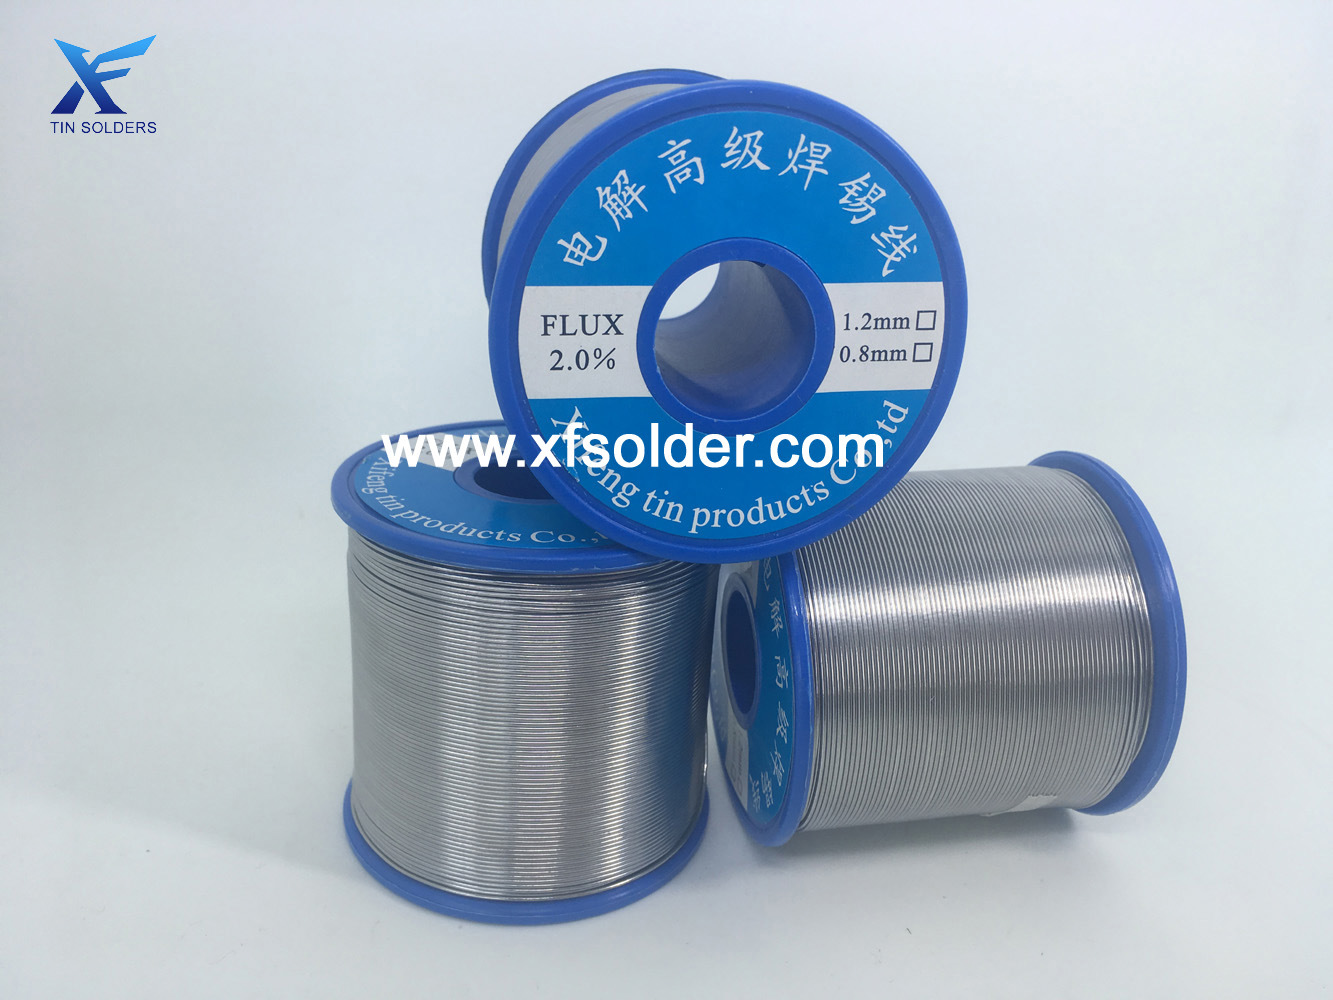 China Tin Copper Silver Antimony Solder Wire - China Tin Solder Wire ...